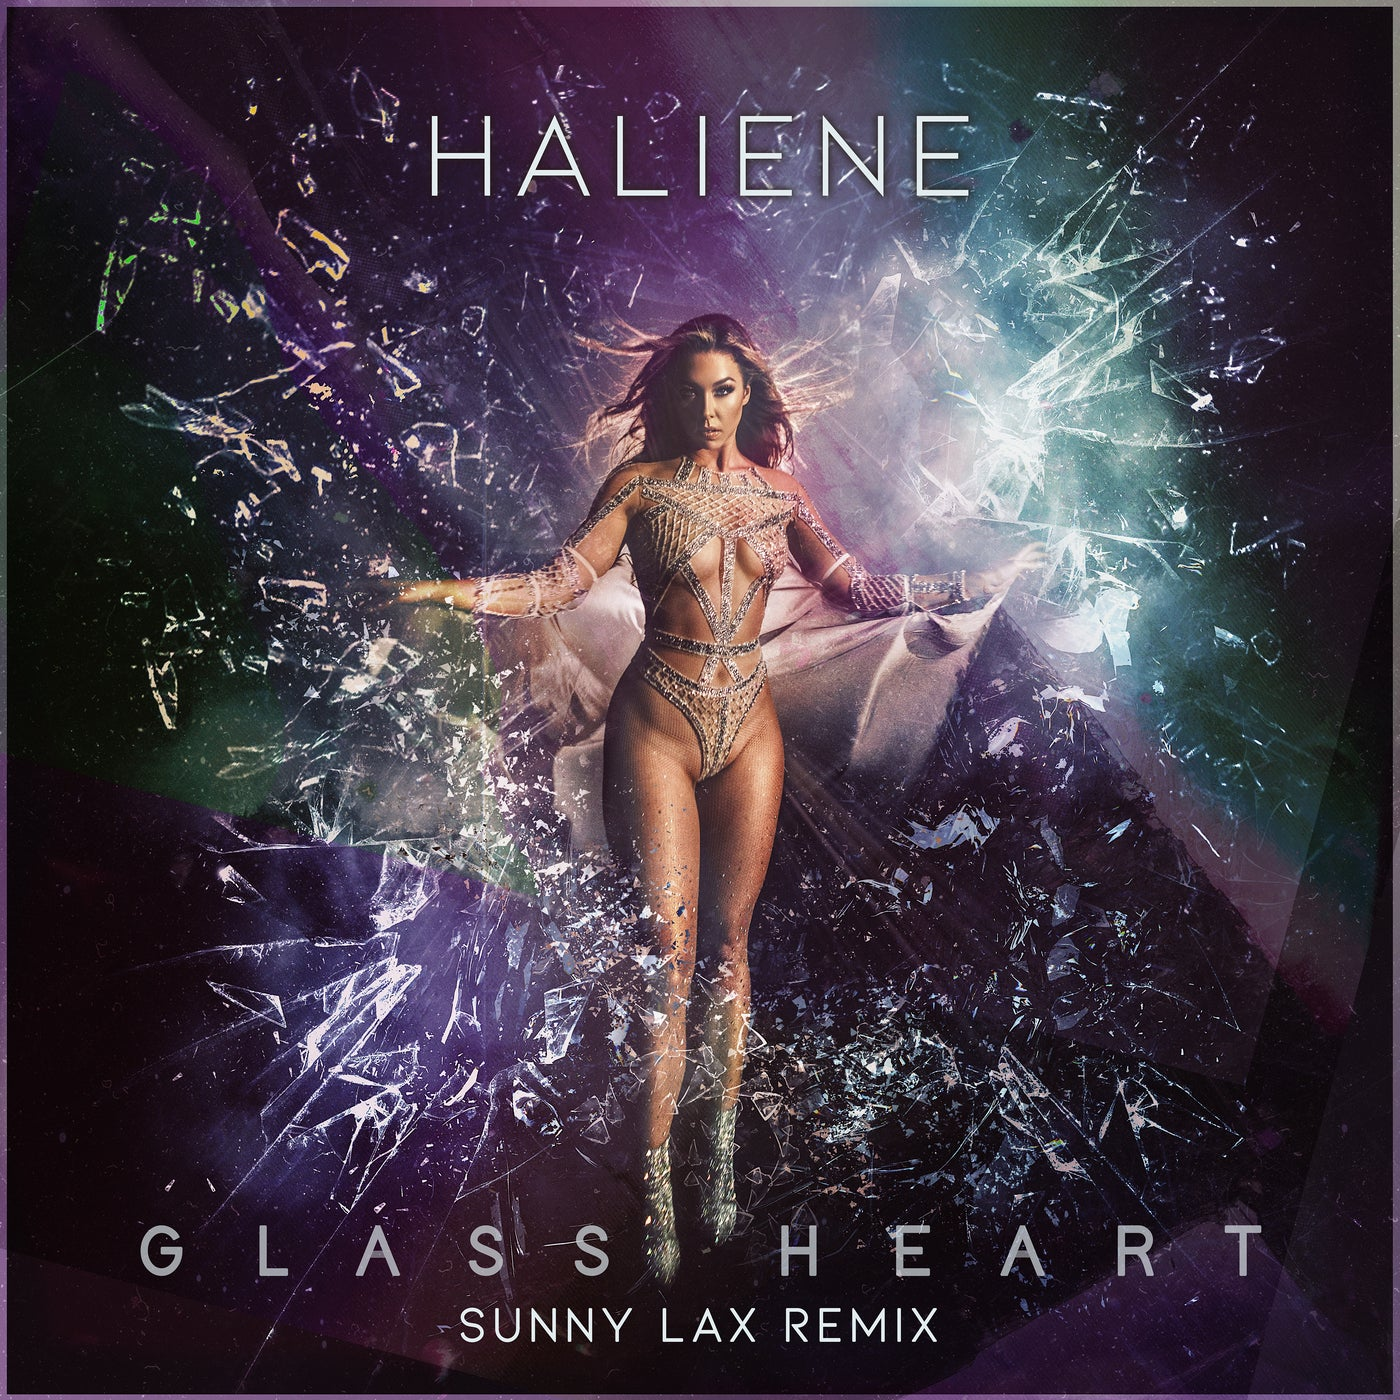 Glass Heart (Sunny Lax Extended Remix)